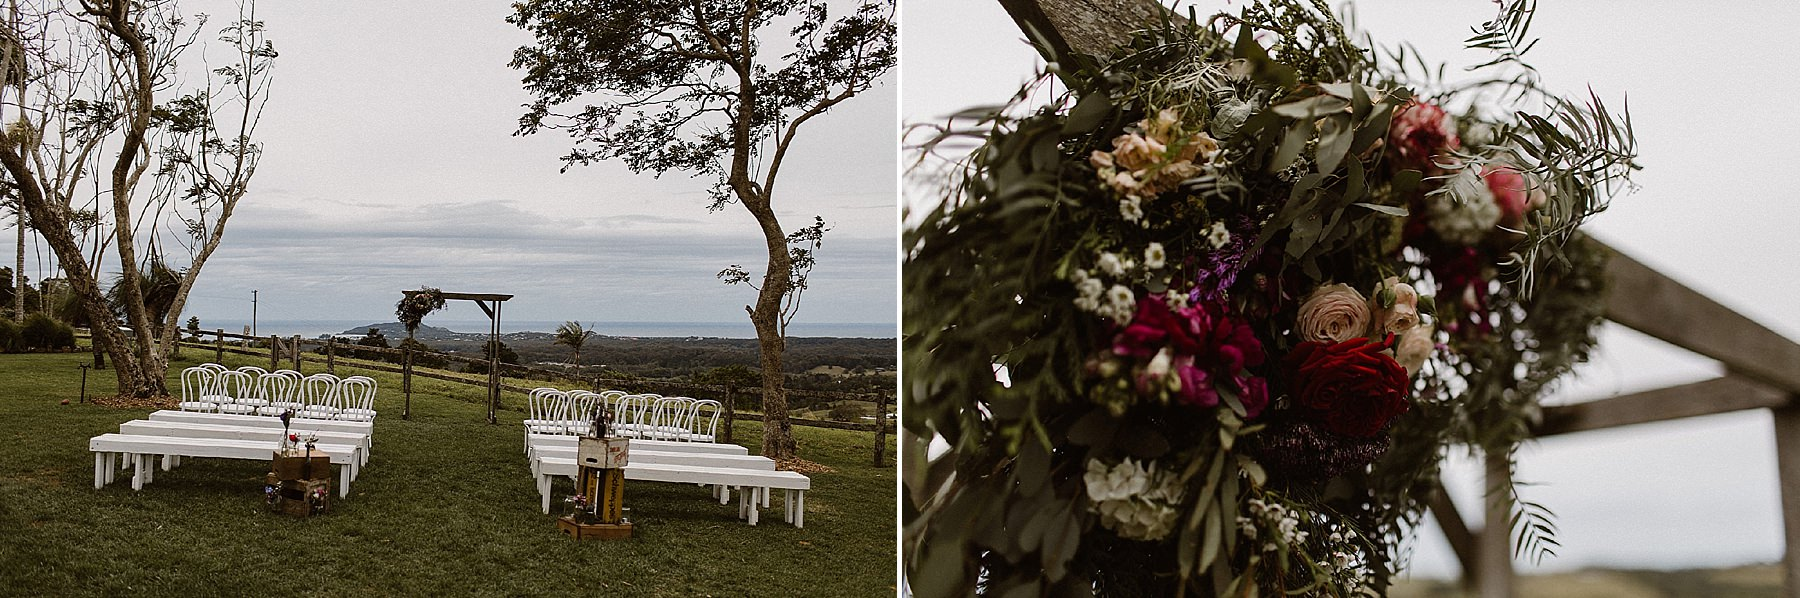 byron_bay_wedding_cj_46